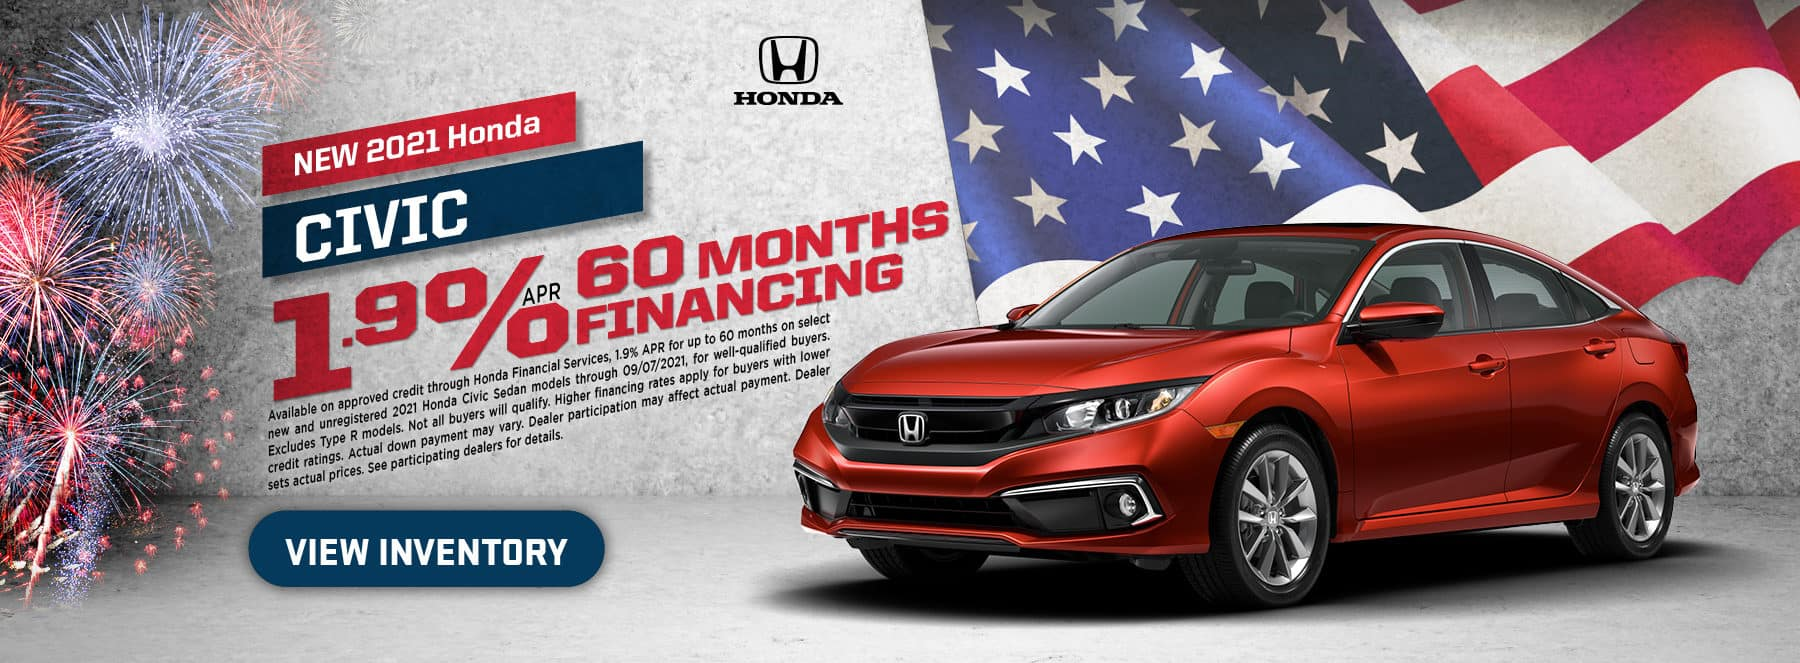 2021 Civic – 1.9% for 60 months